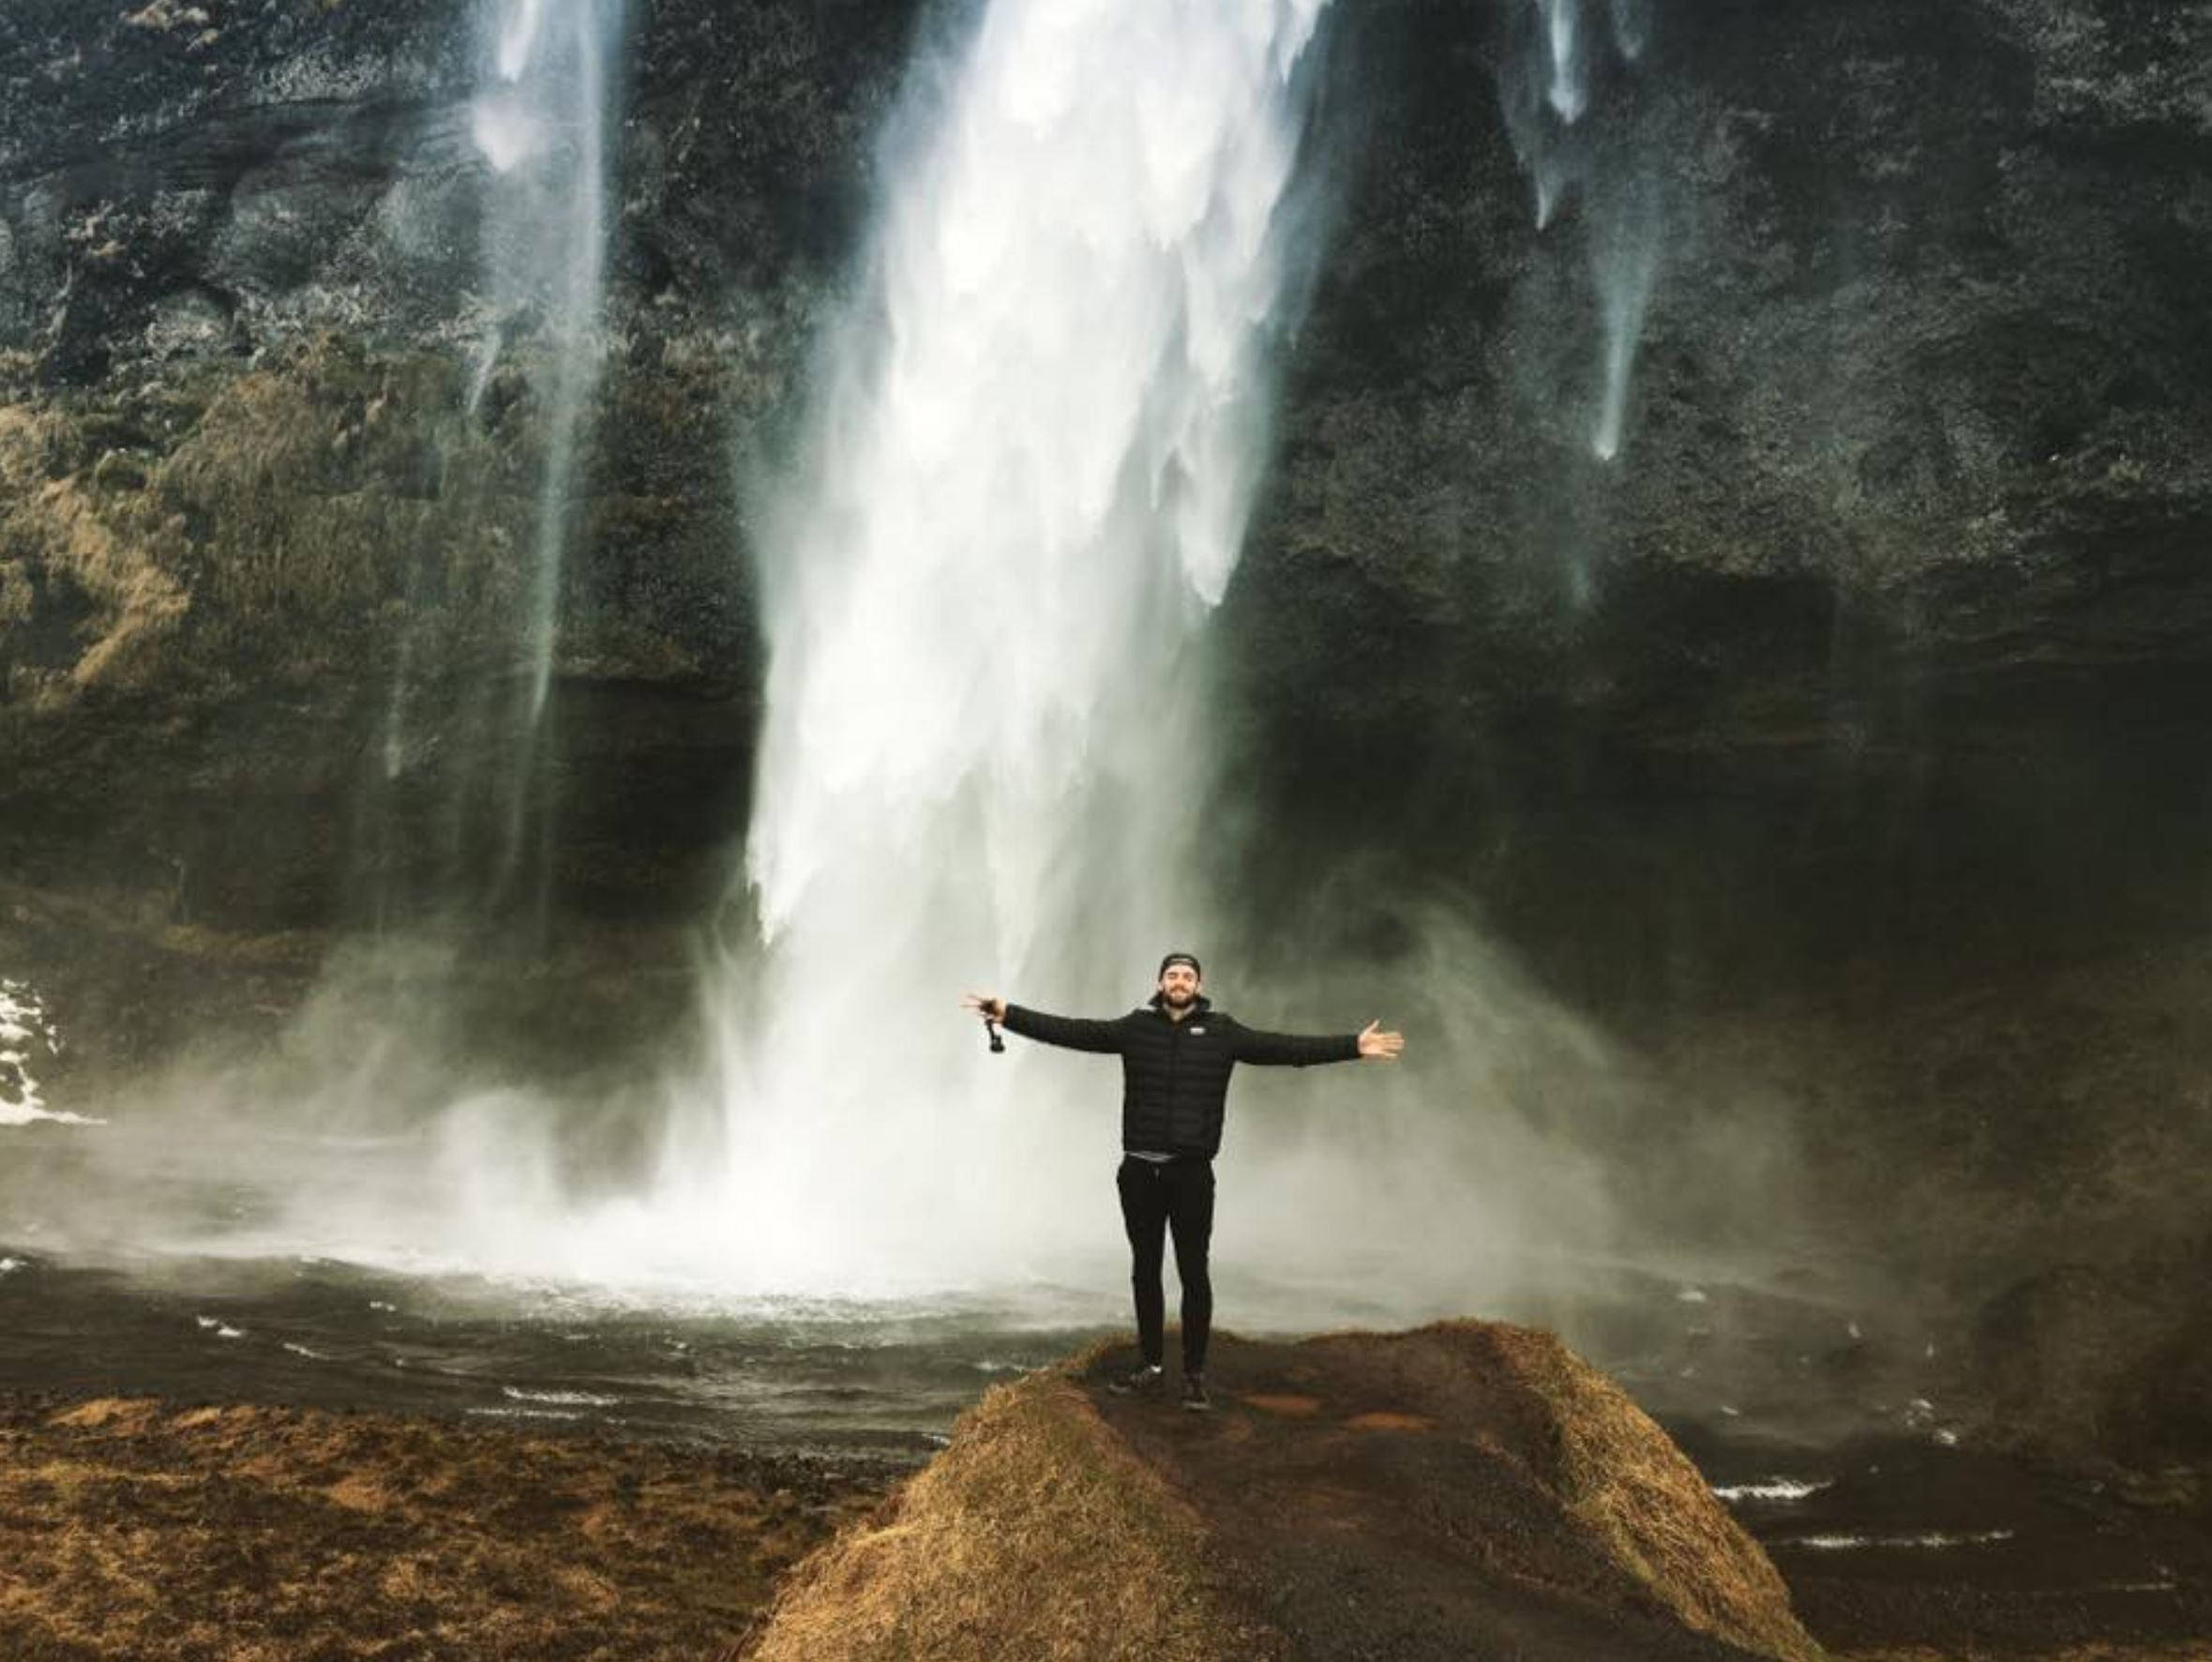 Standing under a waterfall